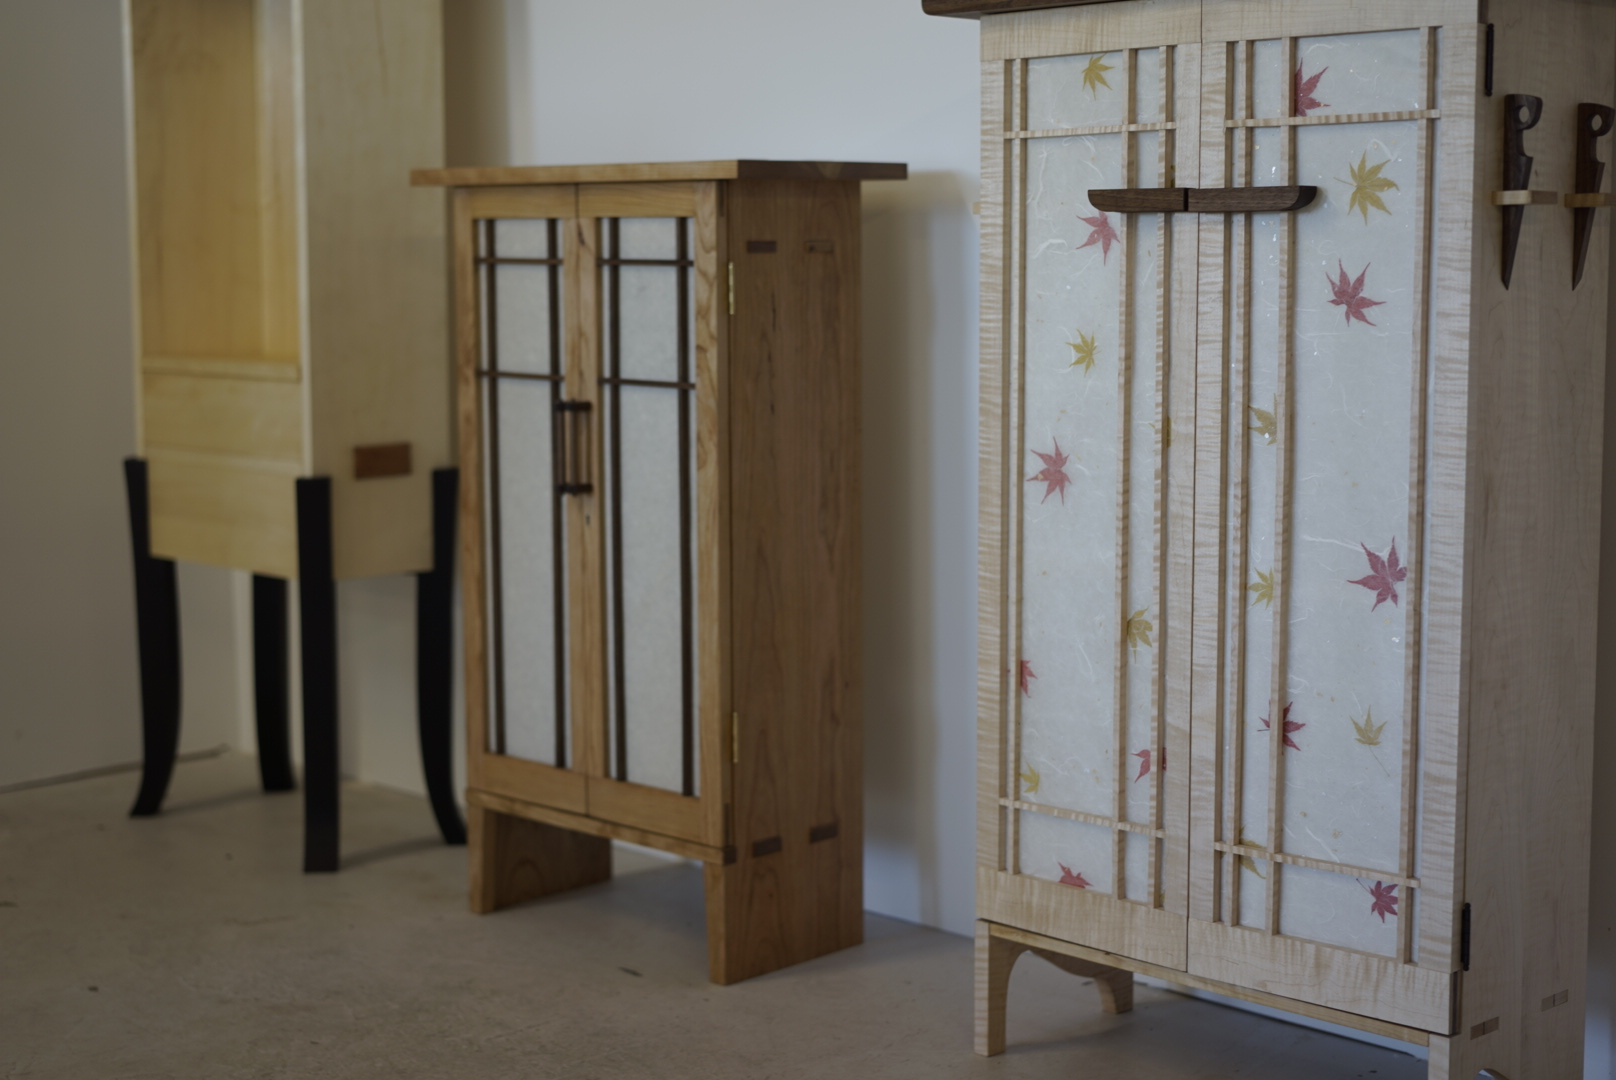 cabinets in line 2